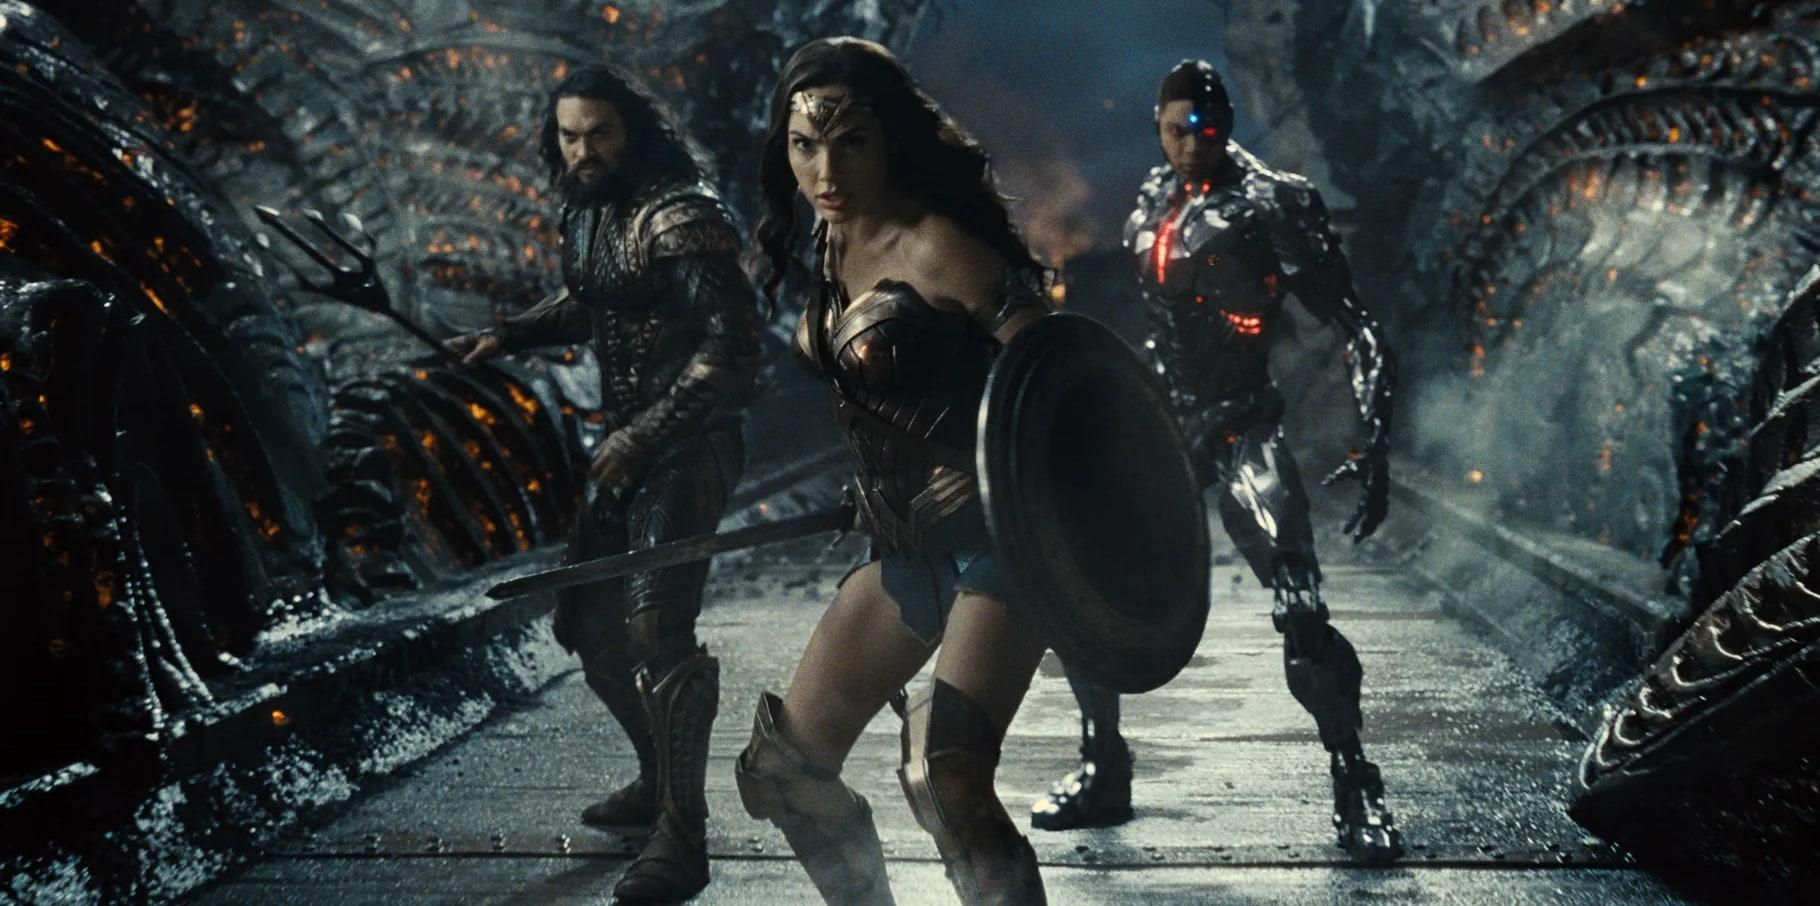 Zack Snyder's Justice League' was made possible by fans, for fans | Engadget